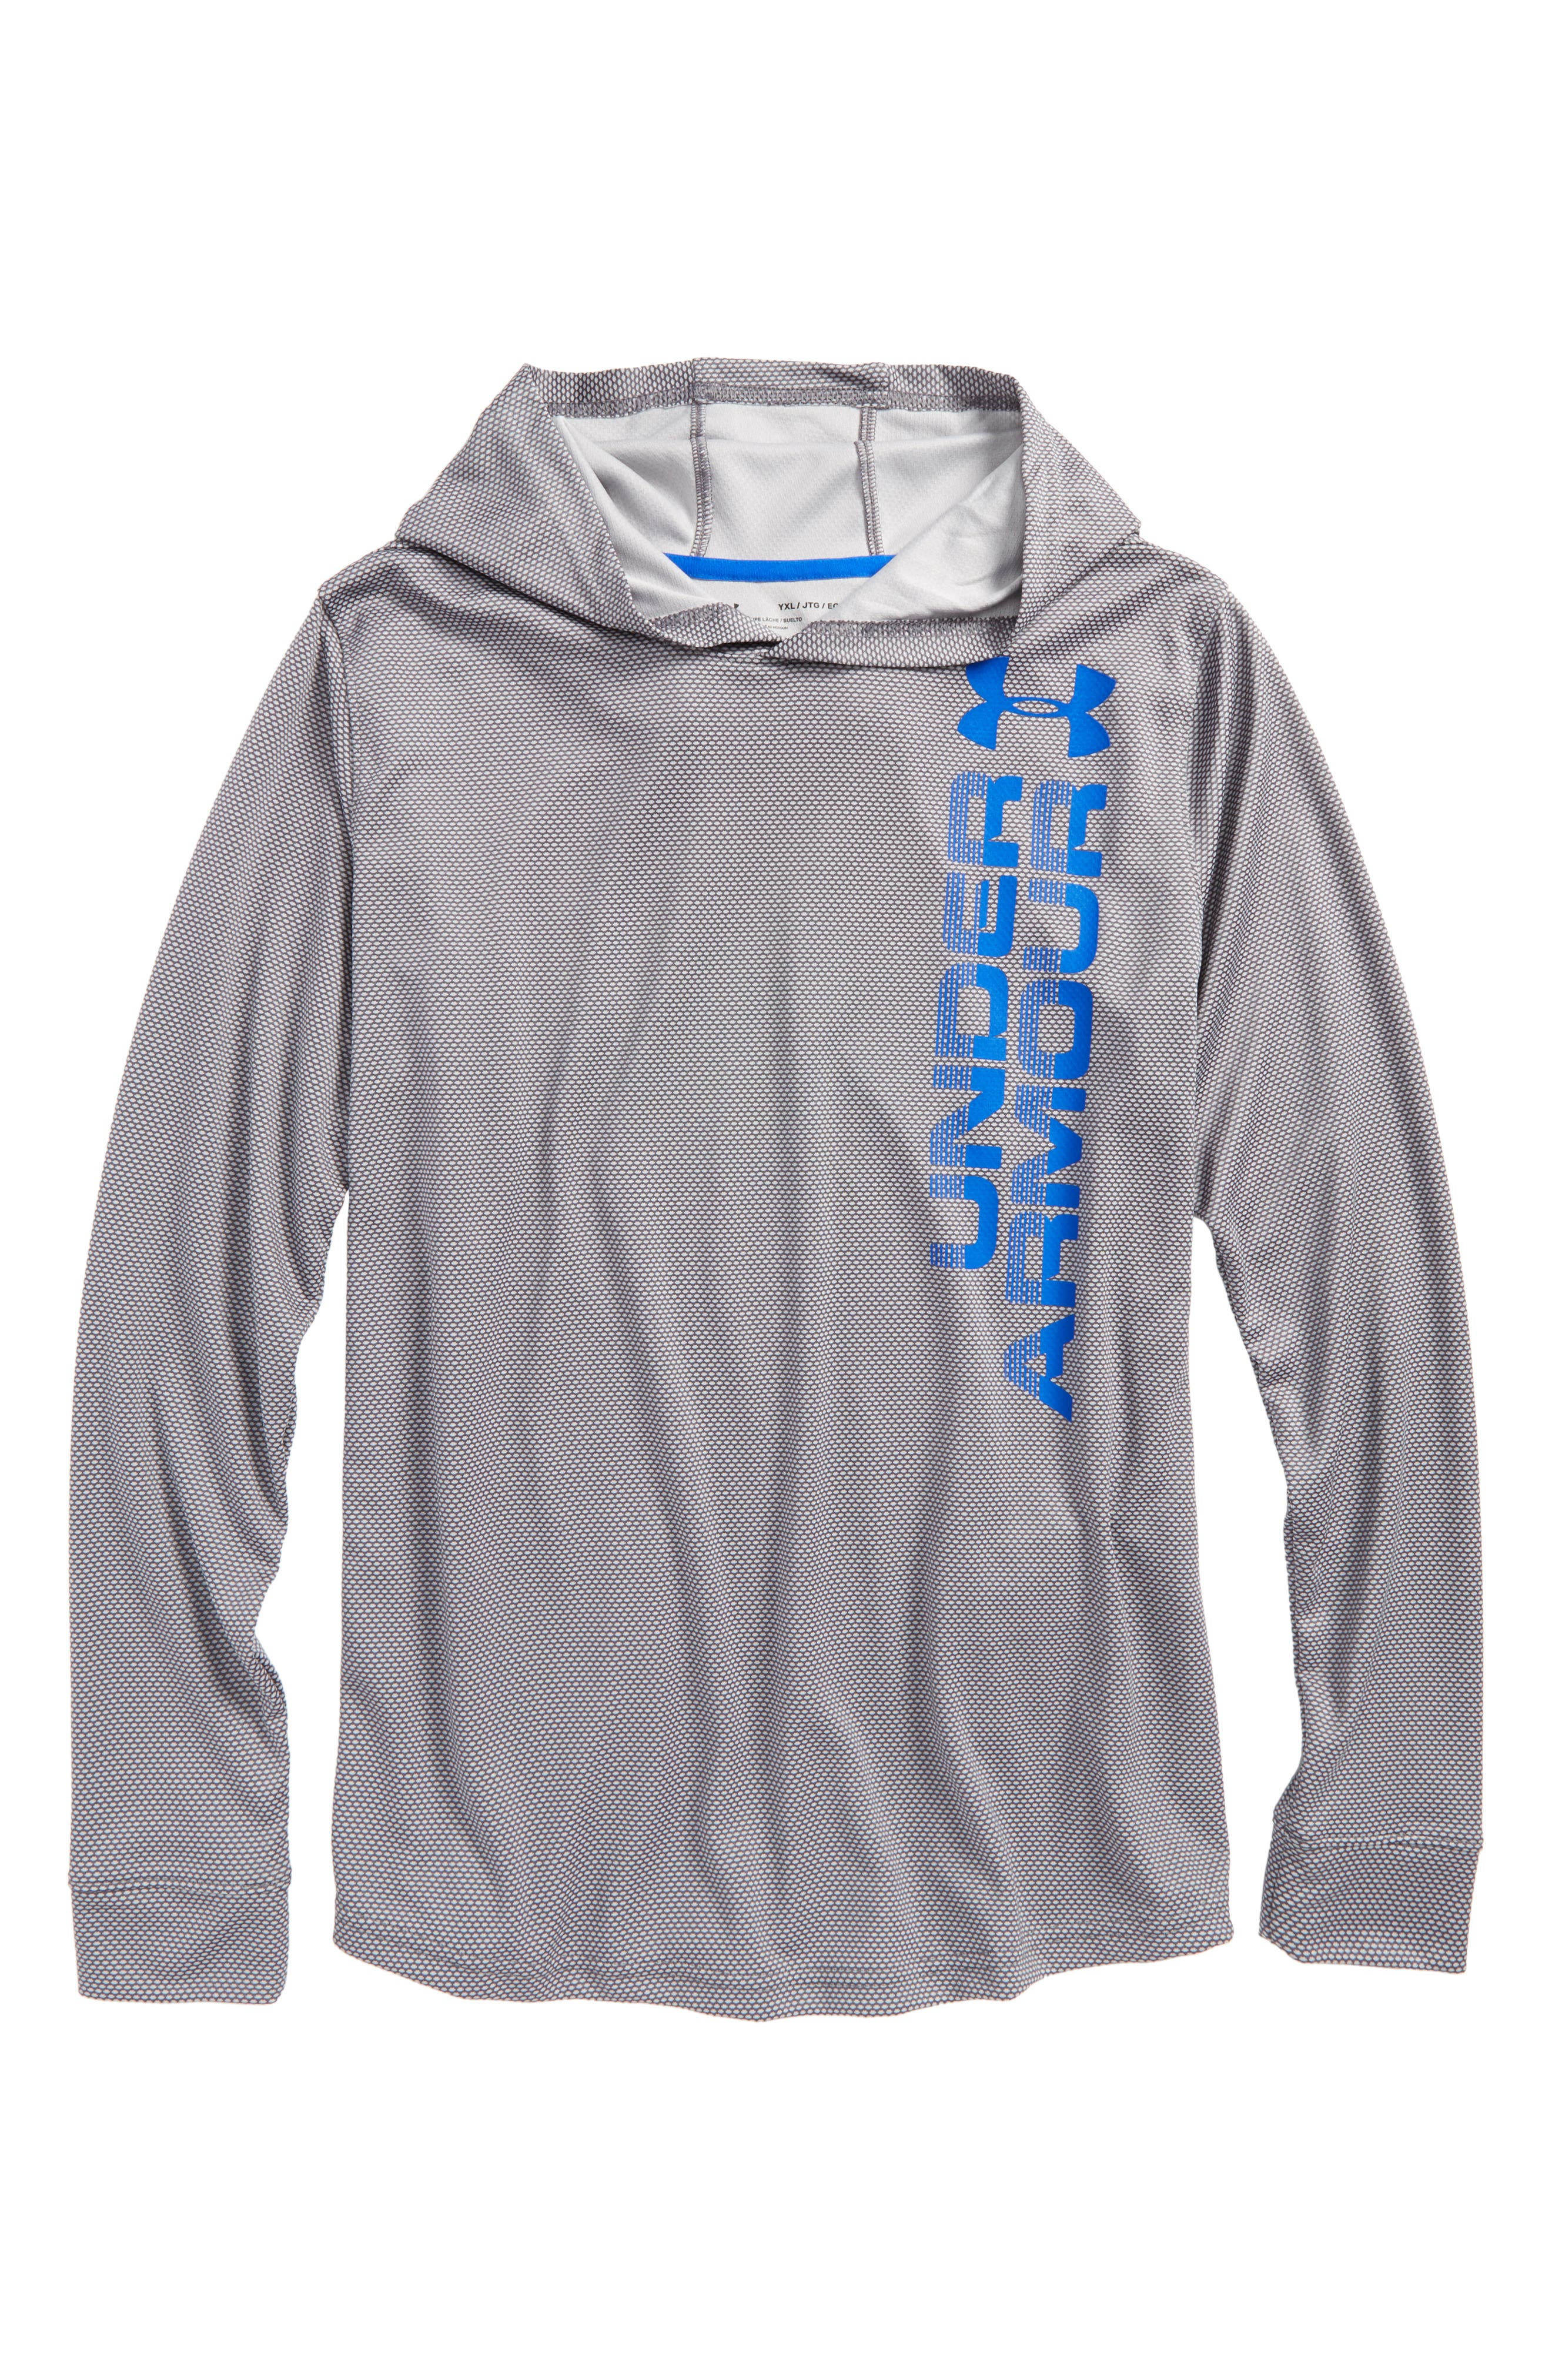 Alternate Image 1 Selected - Under Armour Textured Tech Hoodie (Big Boys)